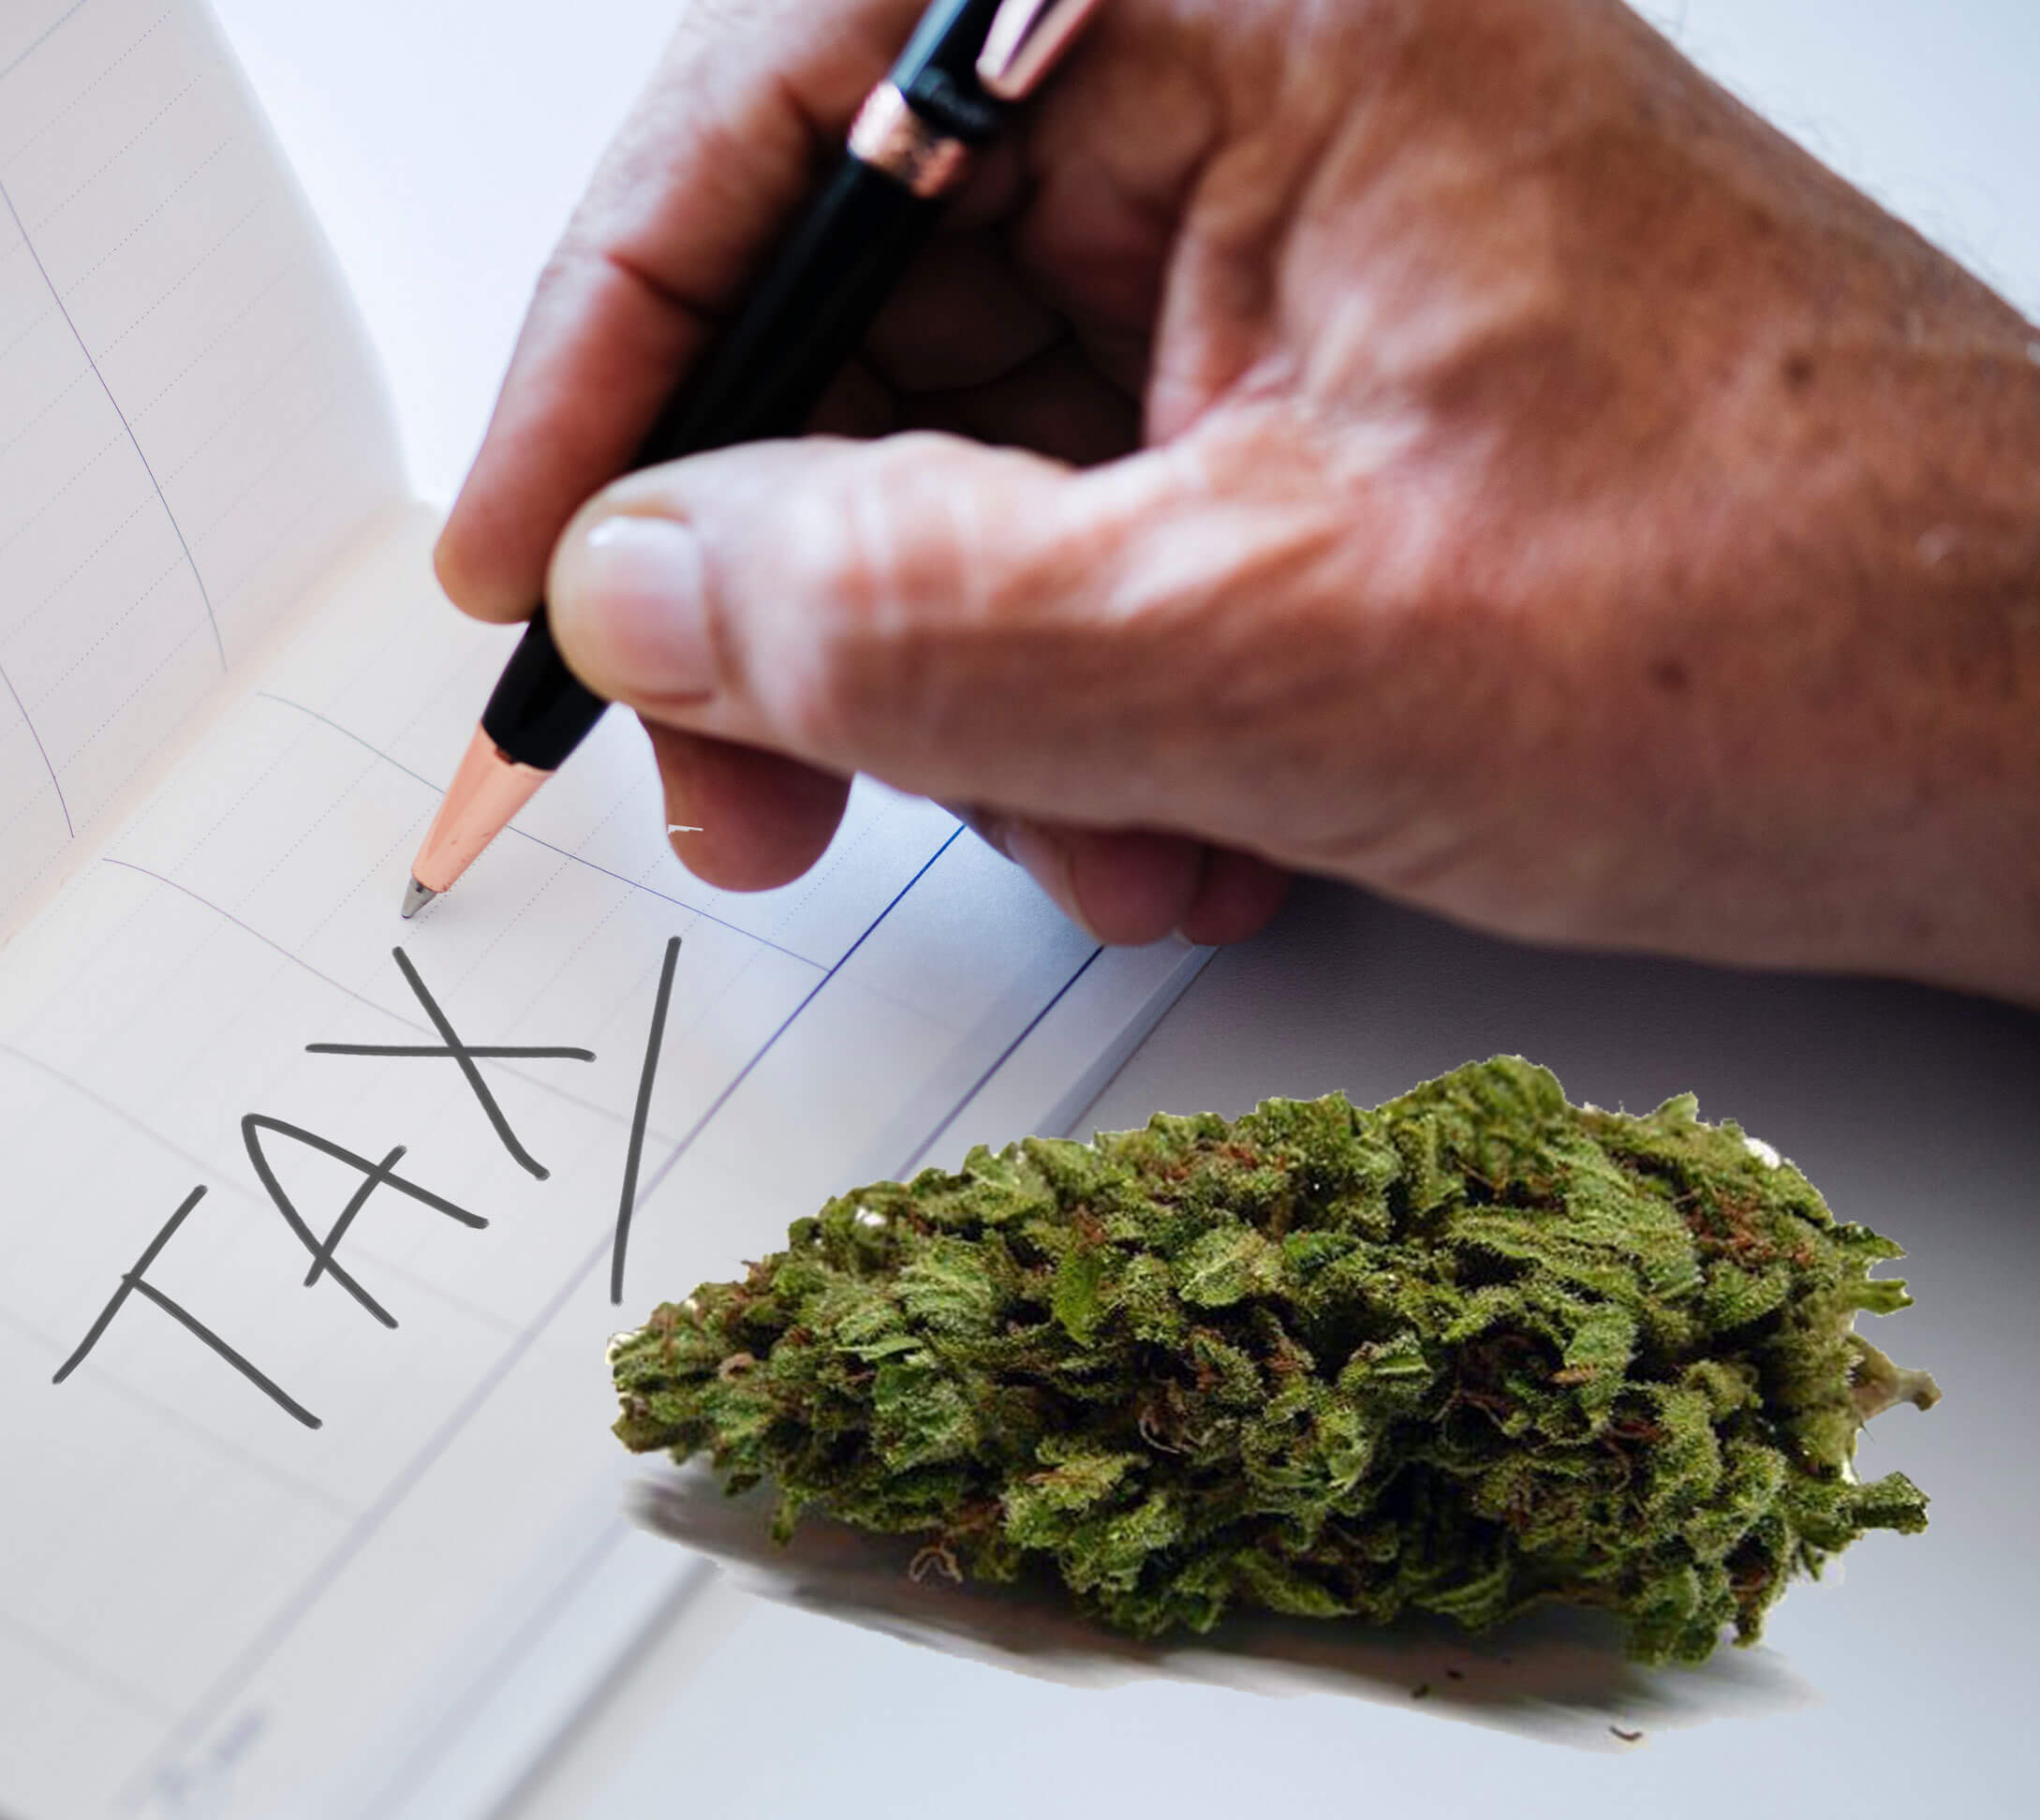 New York Marijuana Tax Revenue Potential